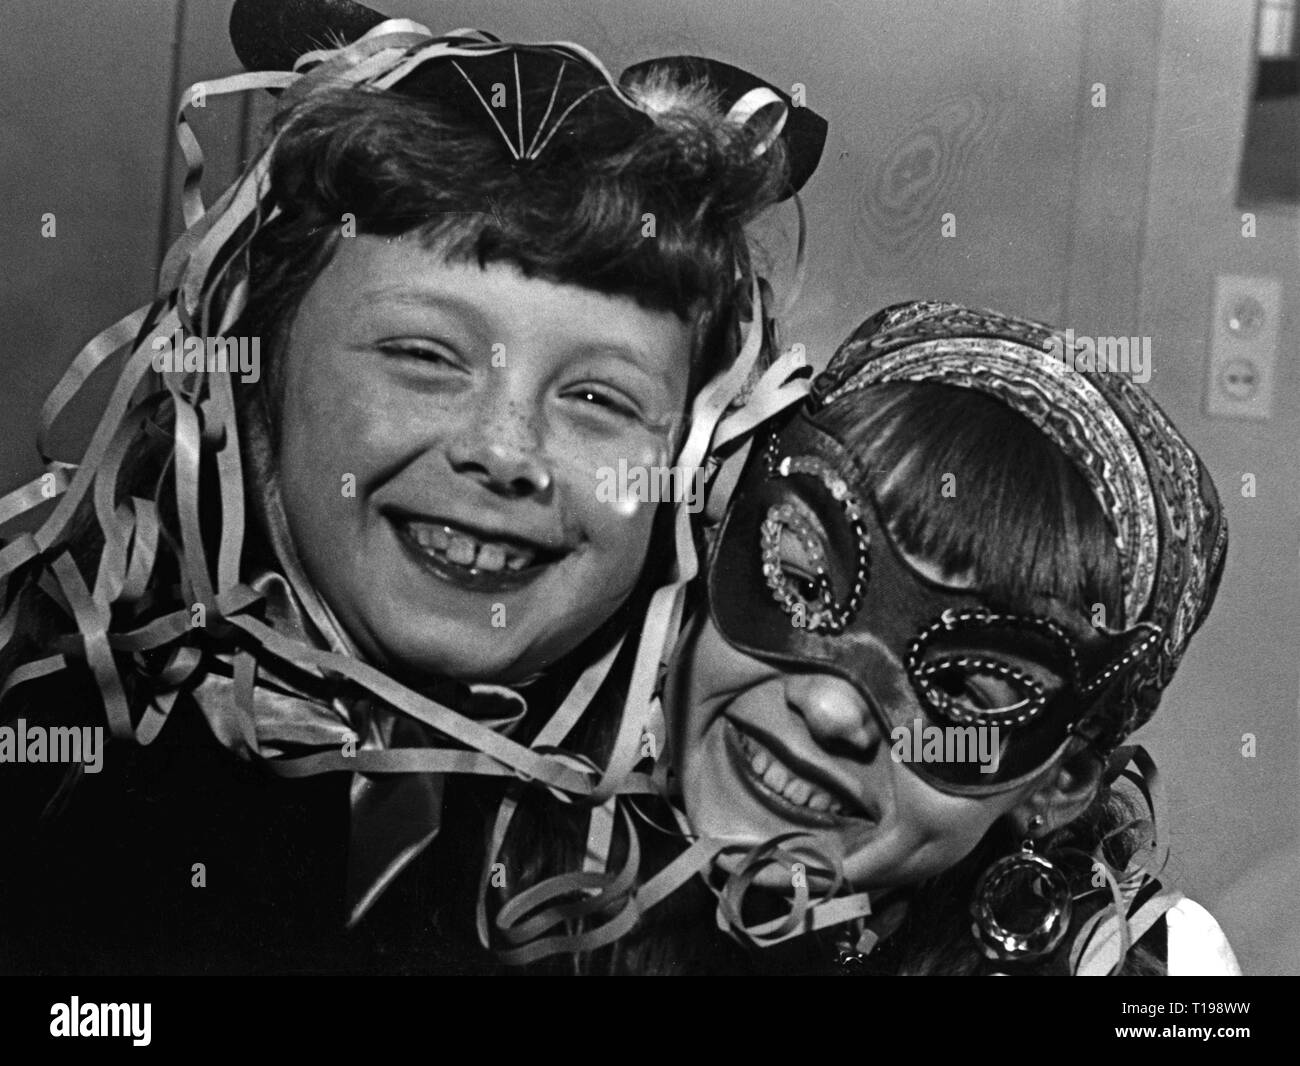 Fiestas, carnaval, dos chicas disfrazadas, 1950-Clearance-Info-Not-Available Additional-Rights Foto de stock